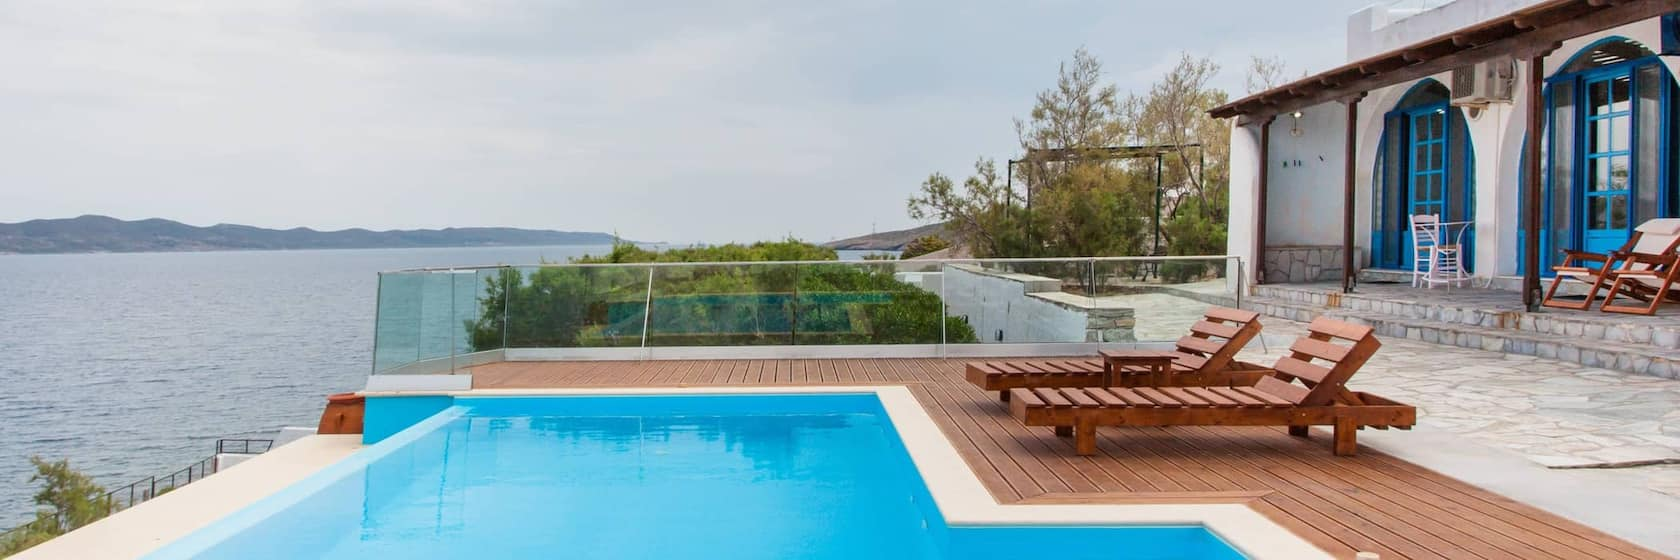 Luxury rentals in Costa del Sol